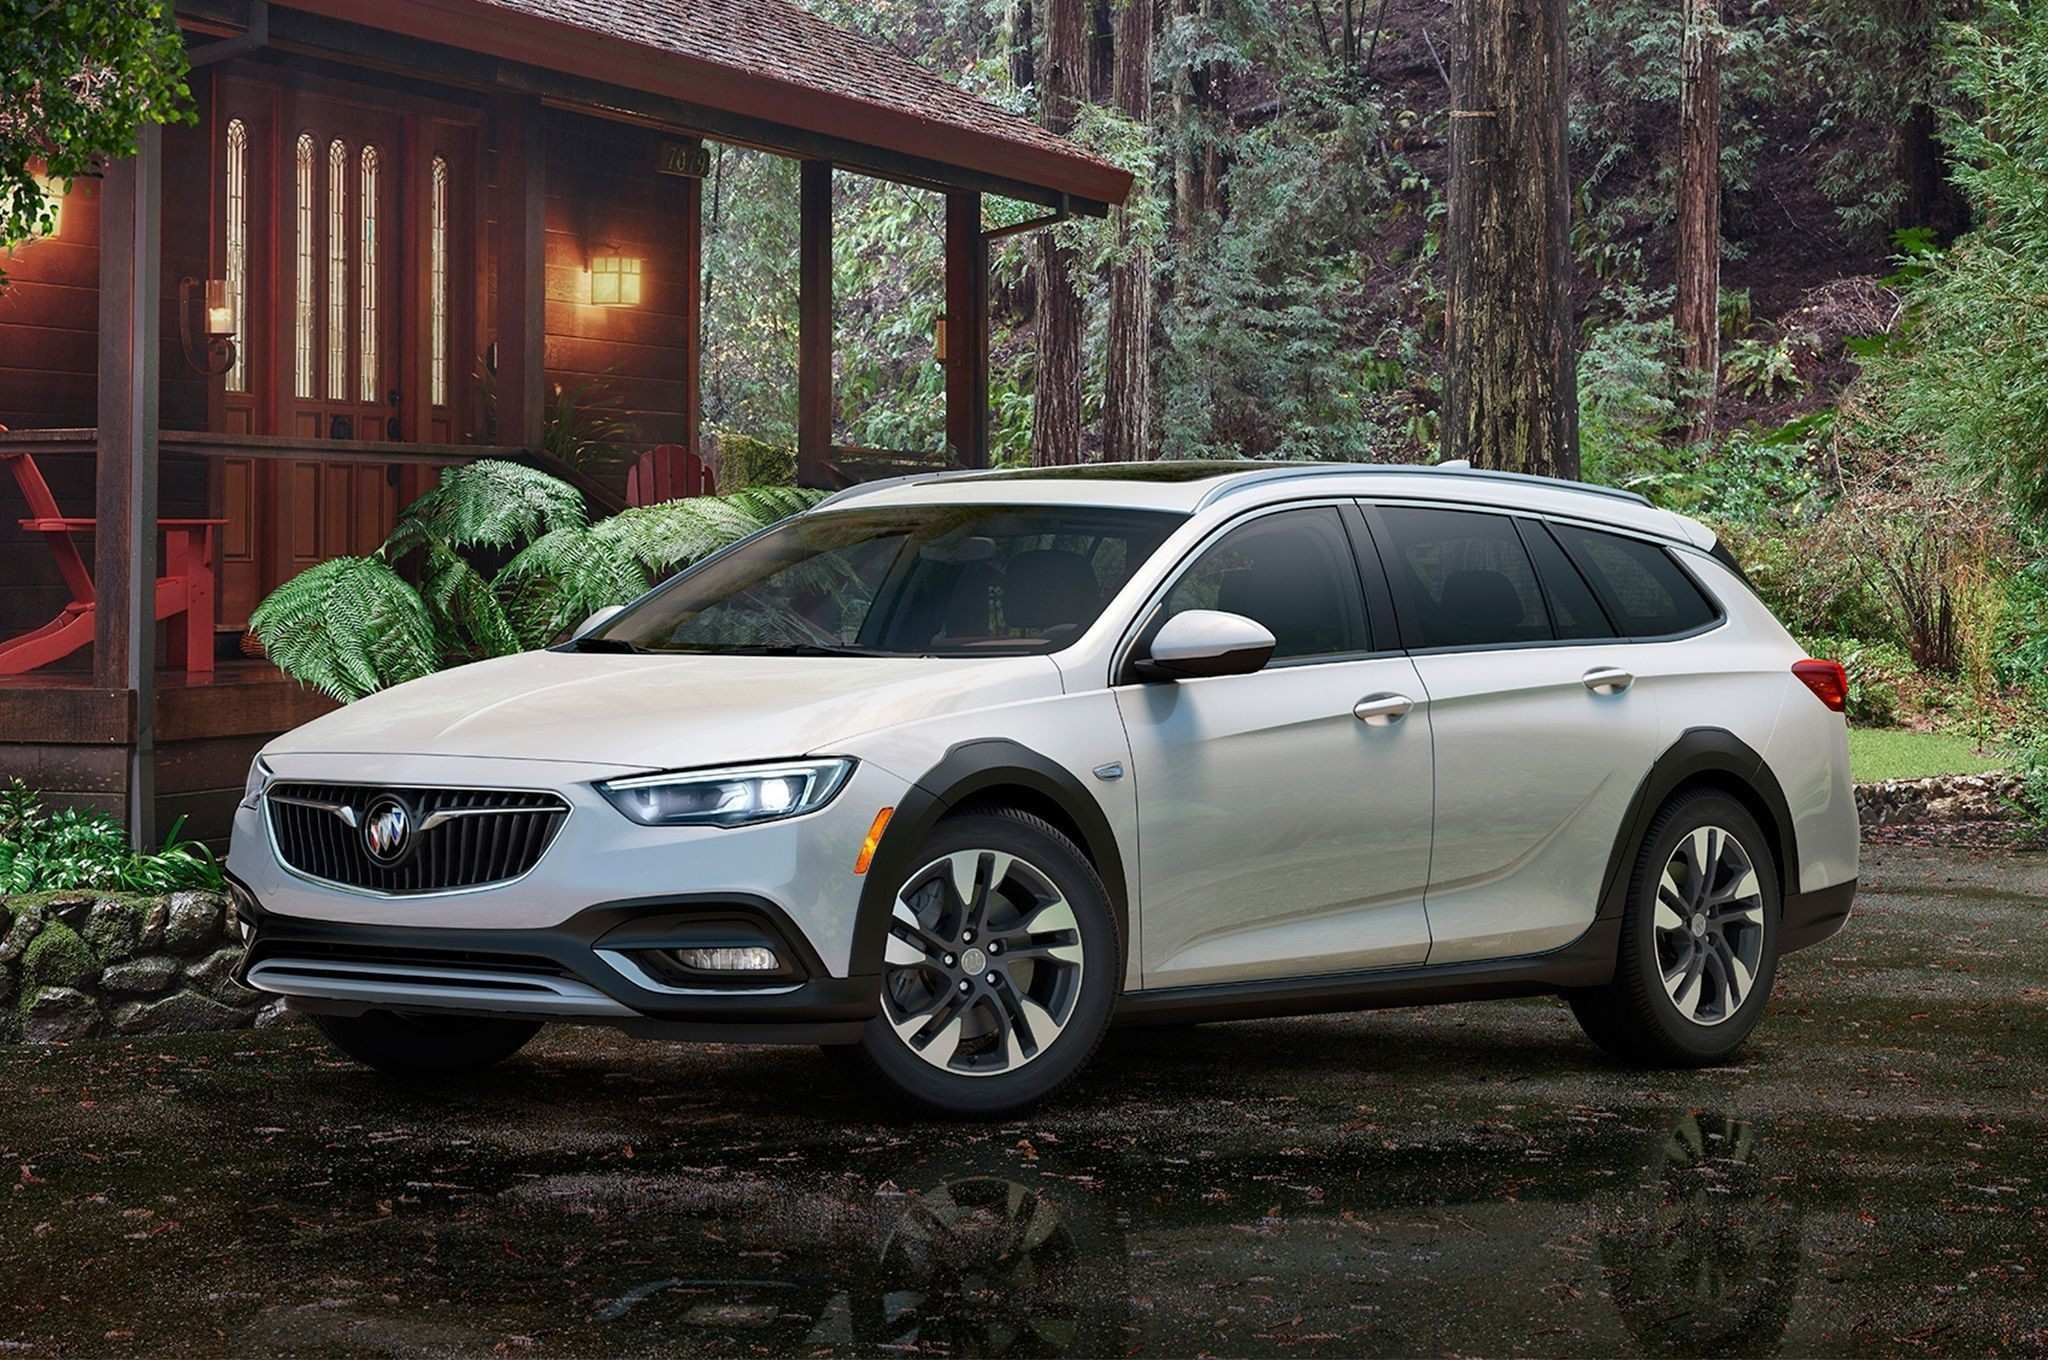 77 All New 2020 All Buick Verano Style